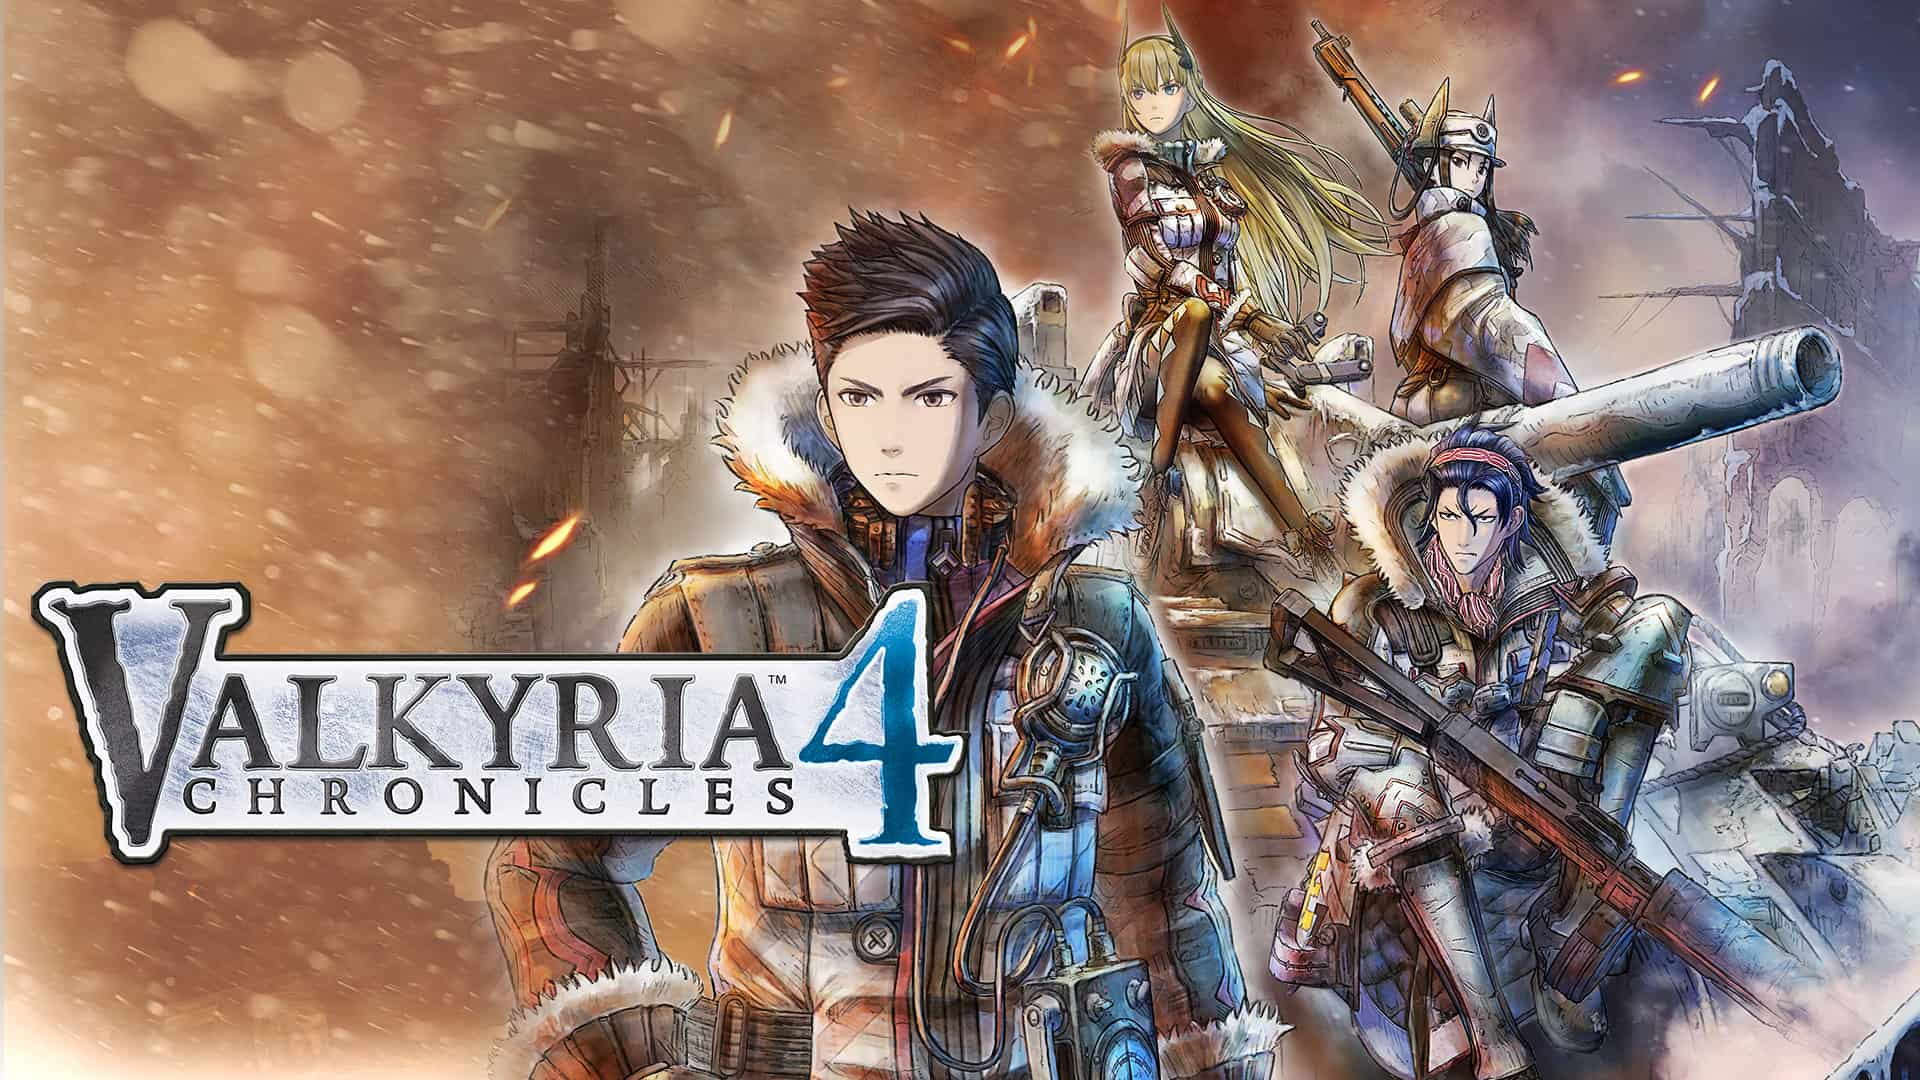 [Update: Available] Valkyria Chronicles 4: Complete Edition enters the battlefield on Stadia this week